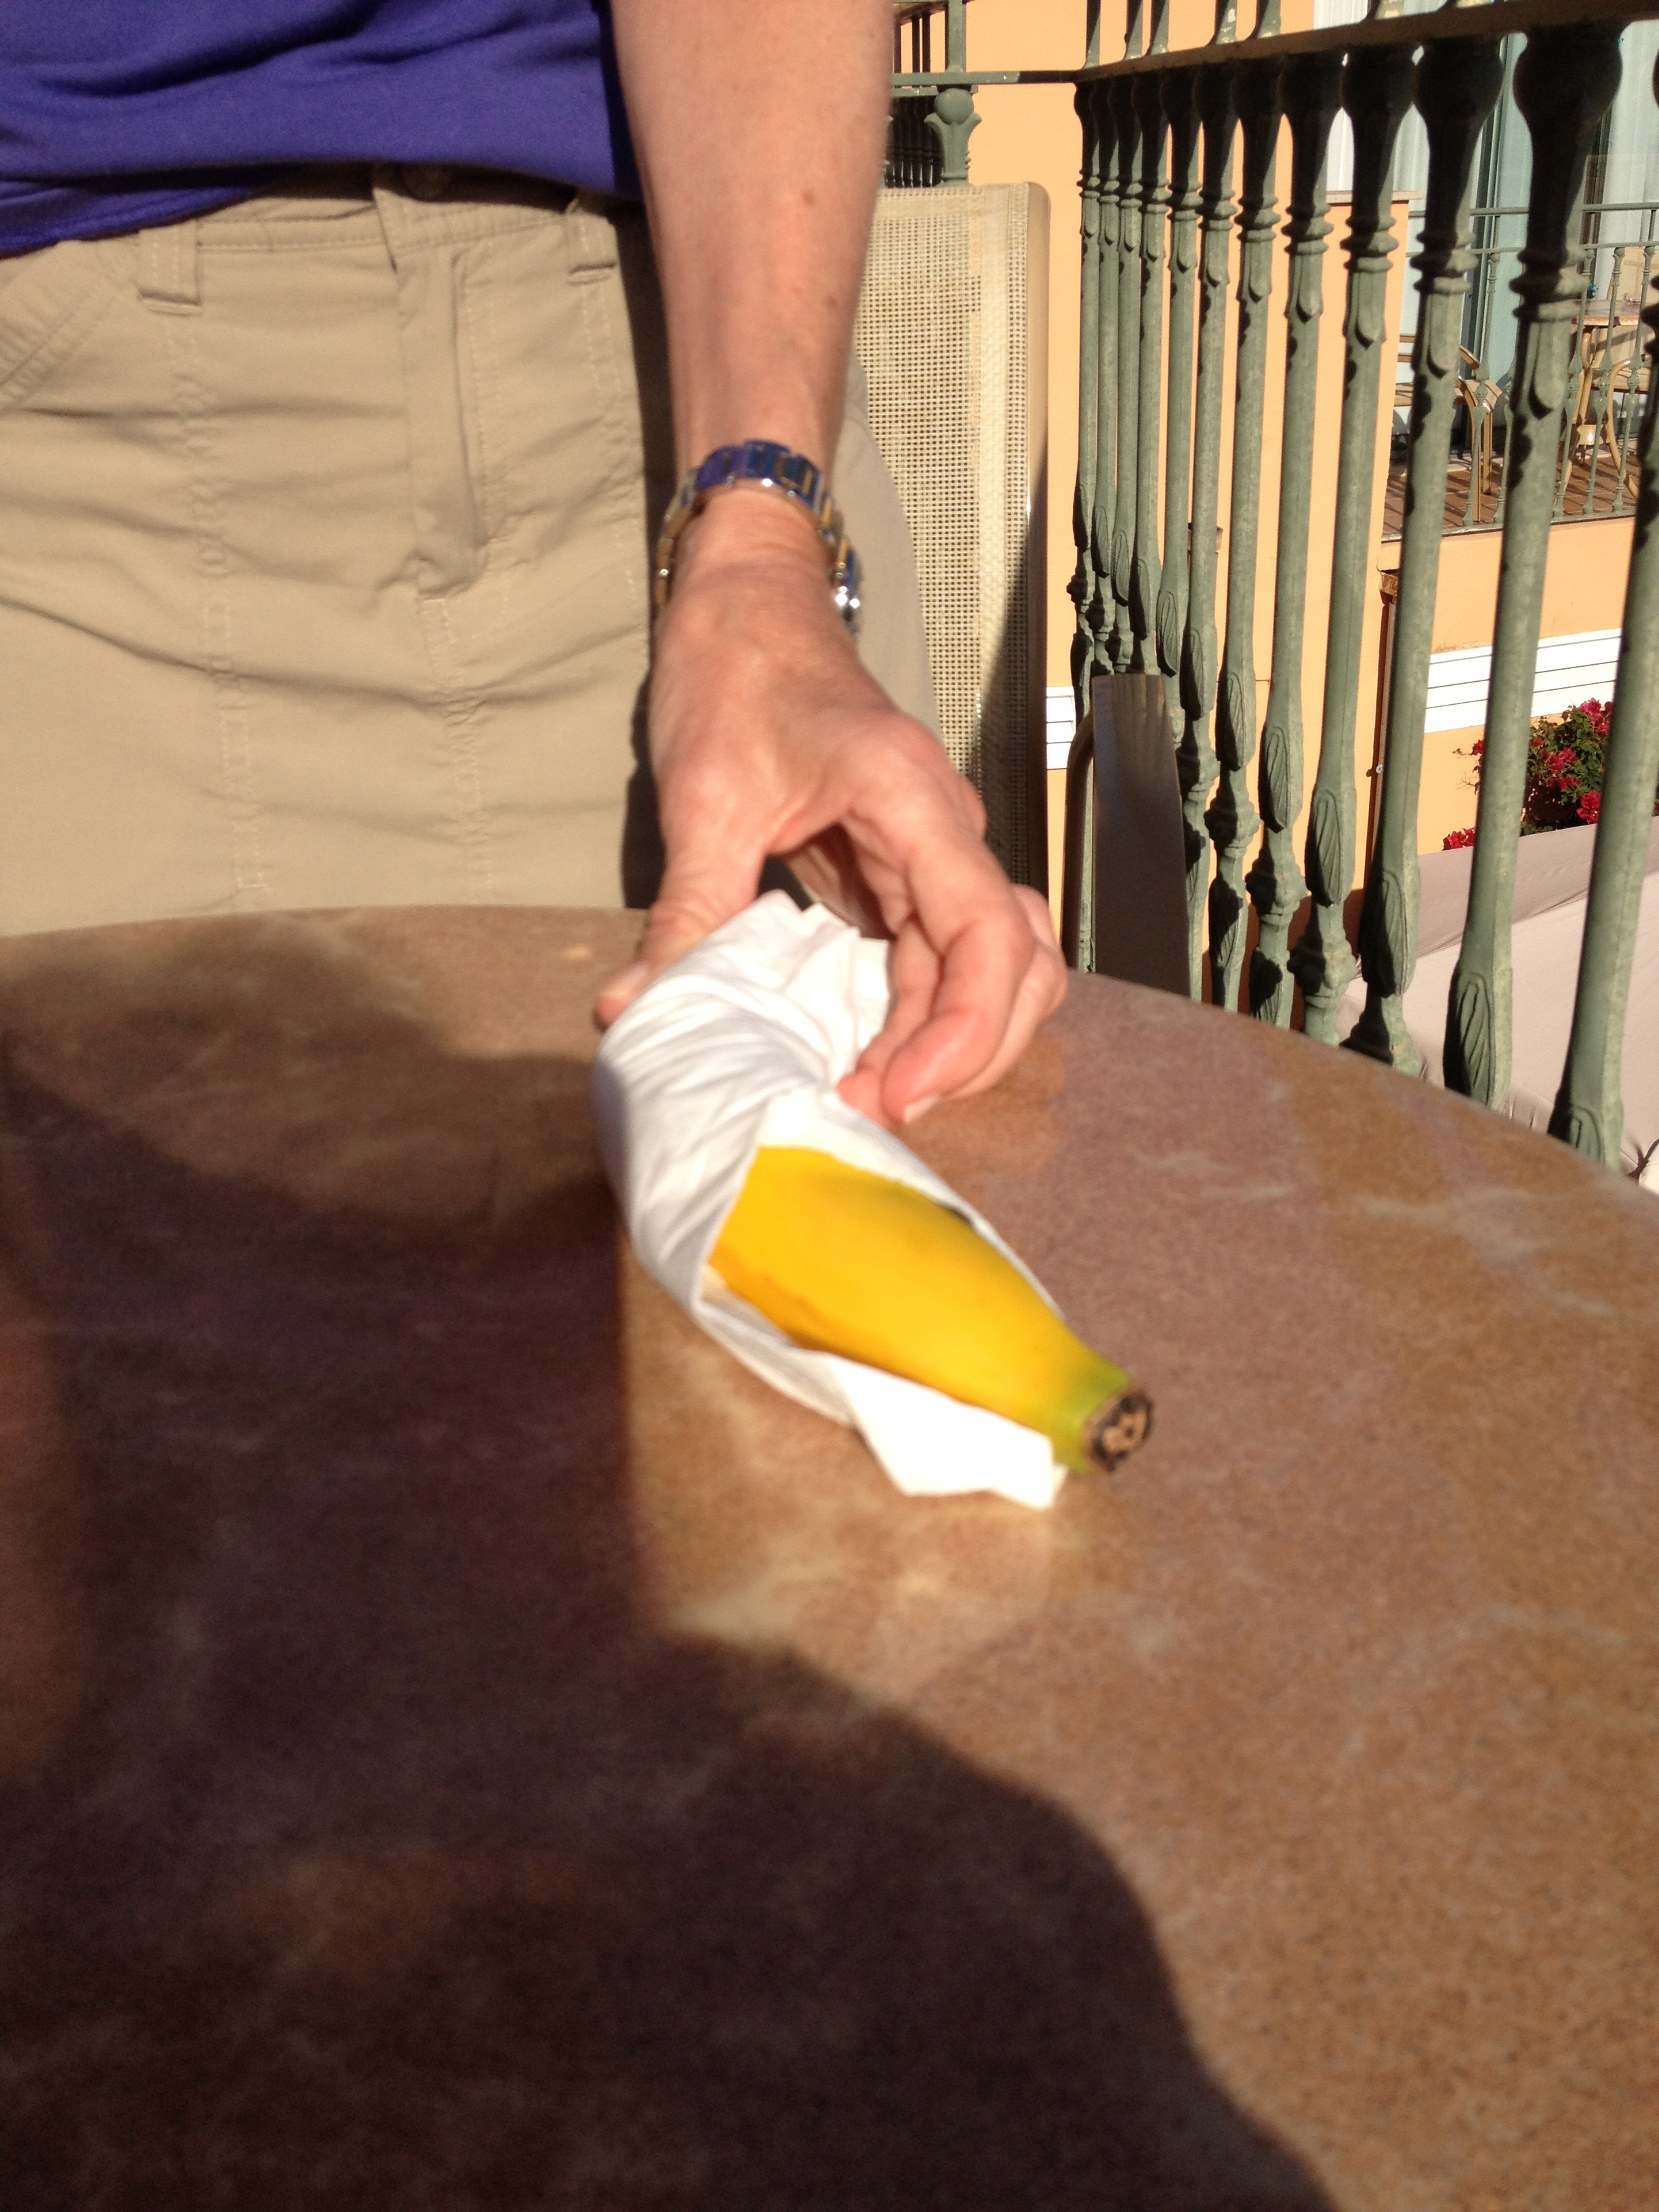 Banana preparation - hygiene matters in food theft